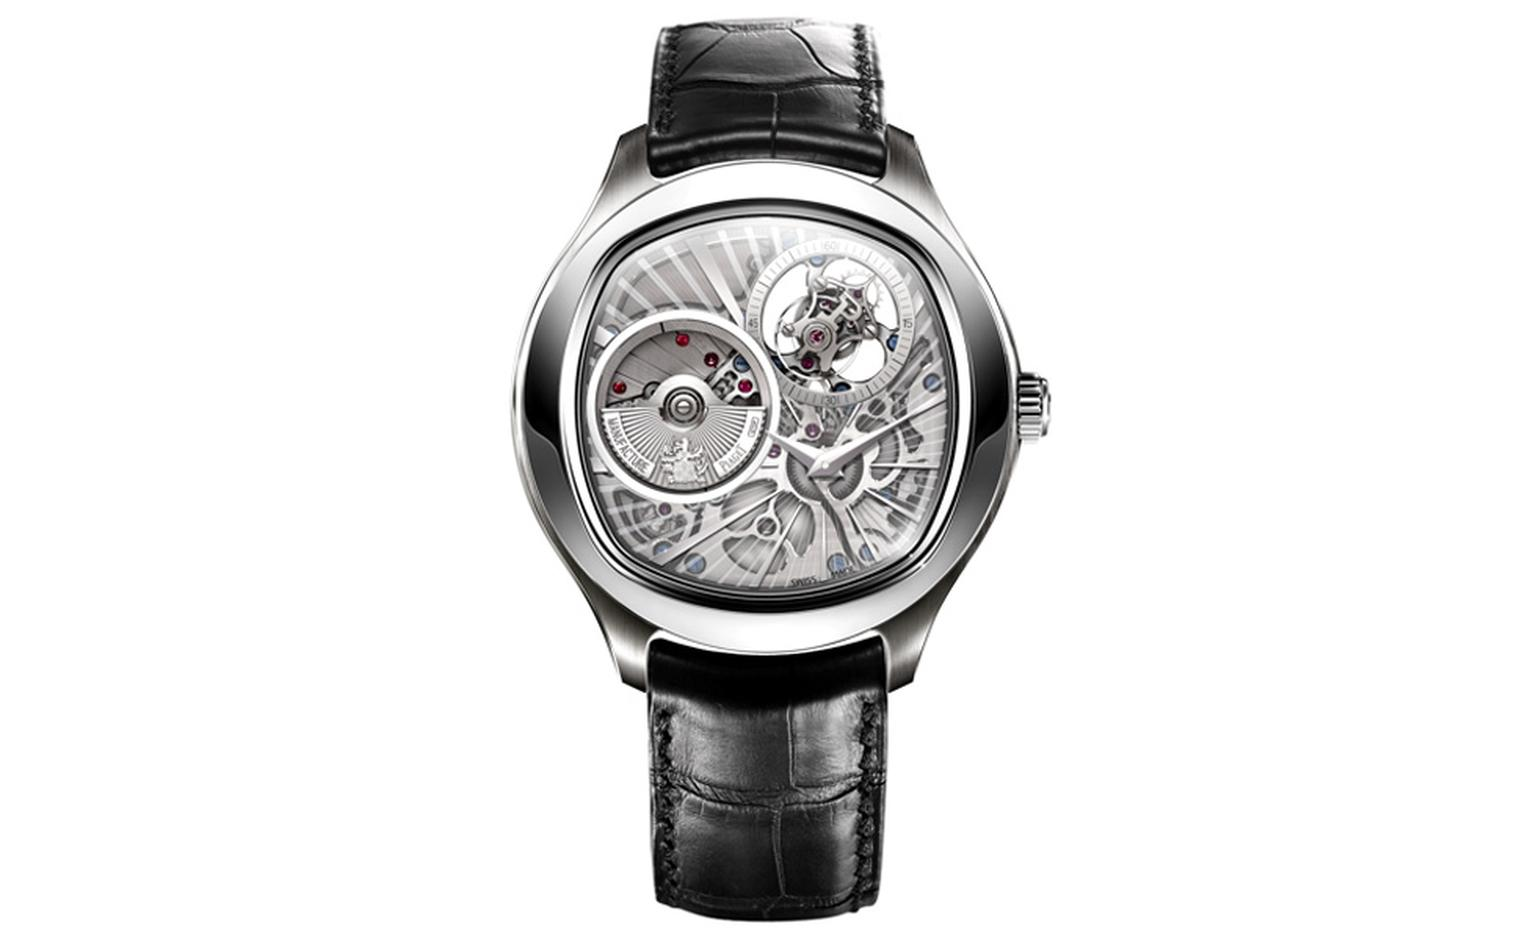 Piaget Emperador Coussin Automatic Ultra Thin Tourbillon is the thinnest tourbillon of its kind and is only 10.4 mm high